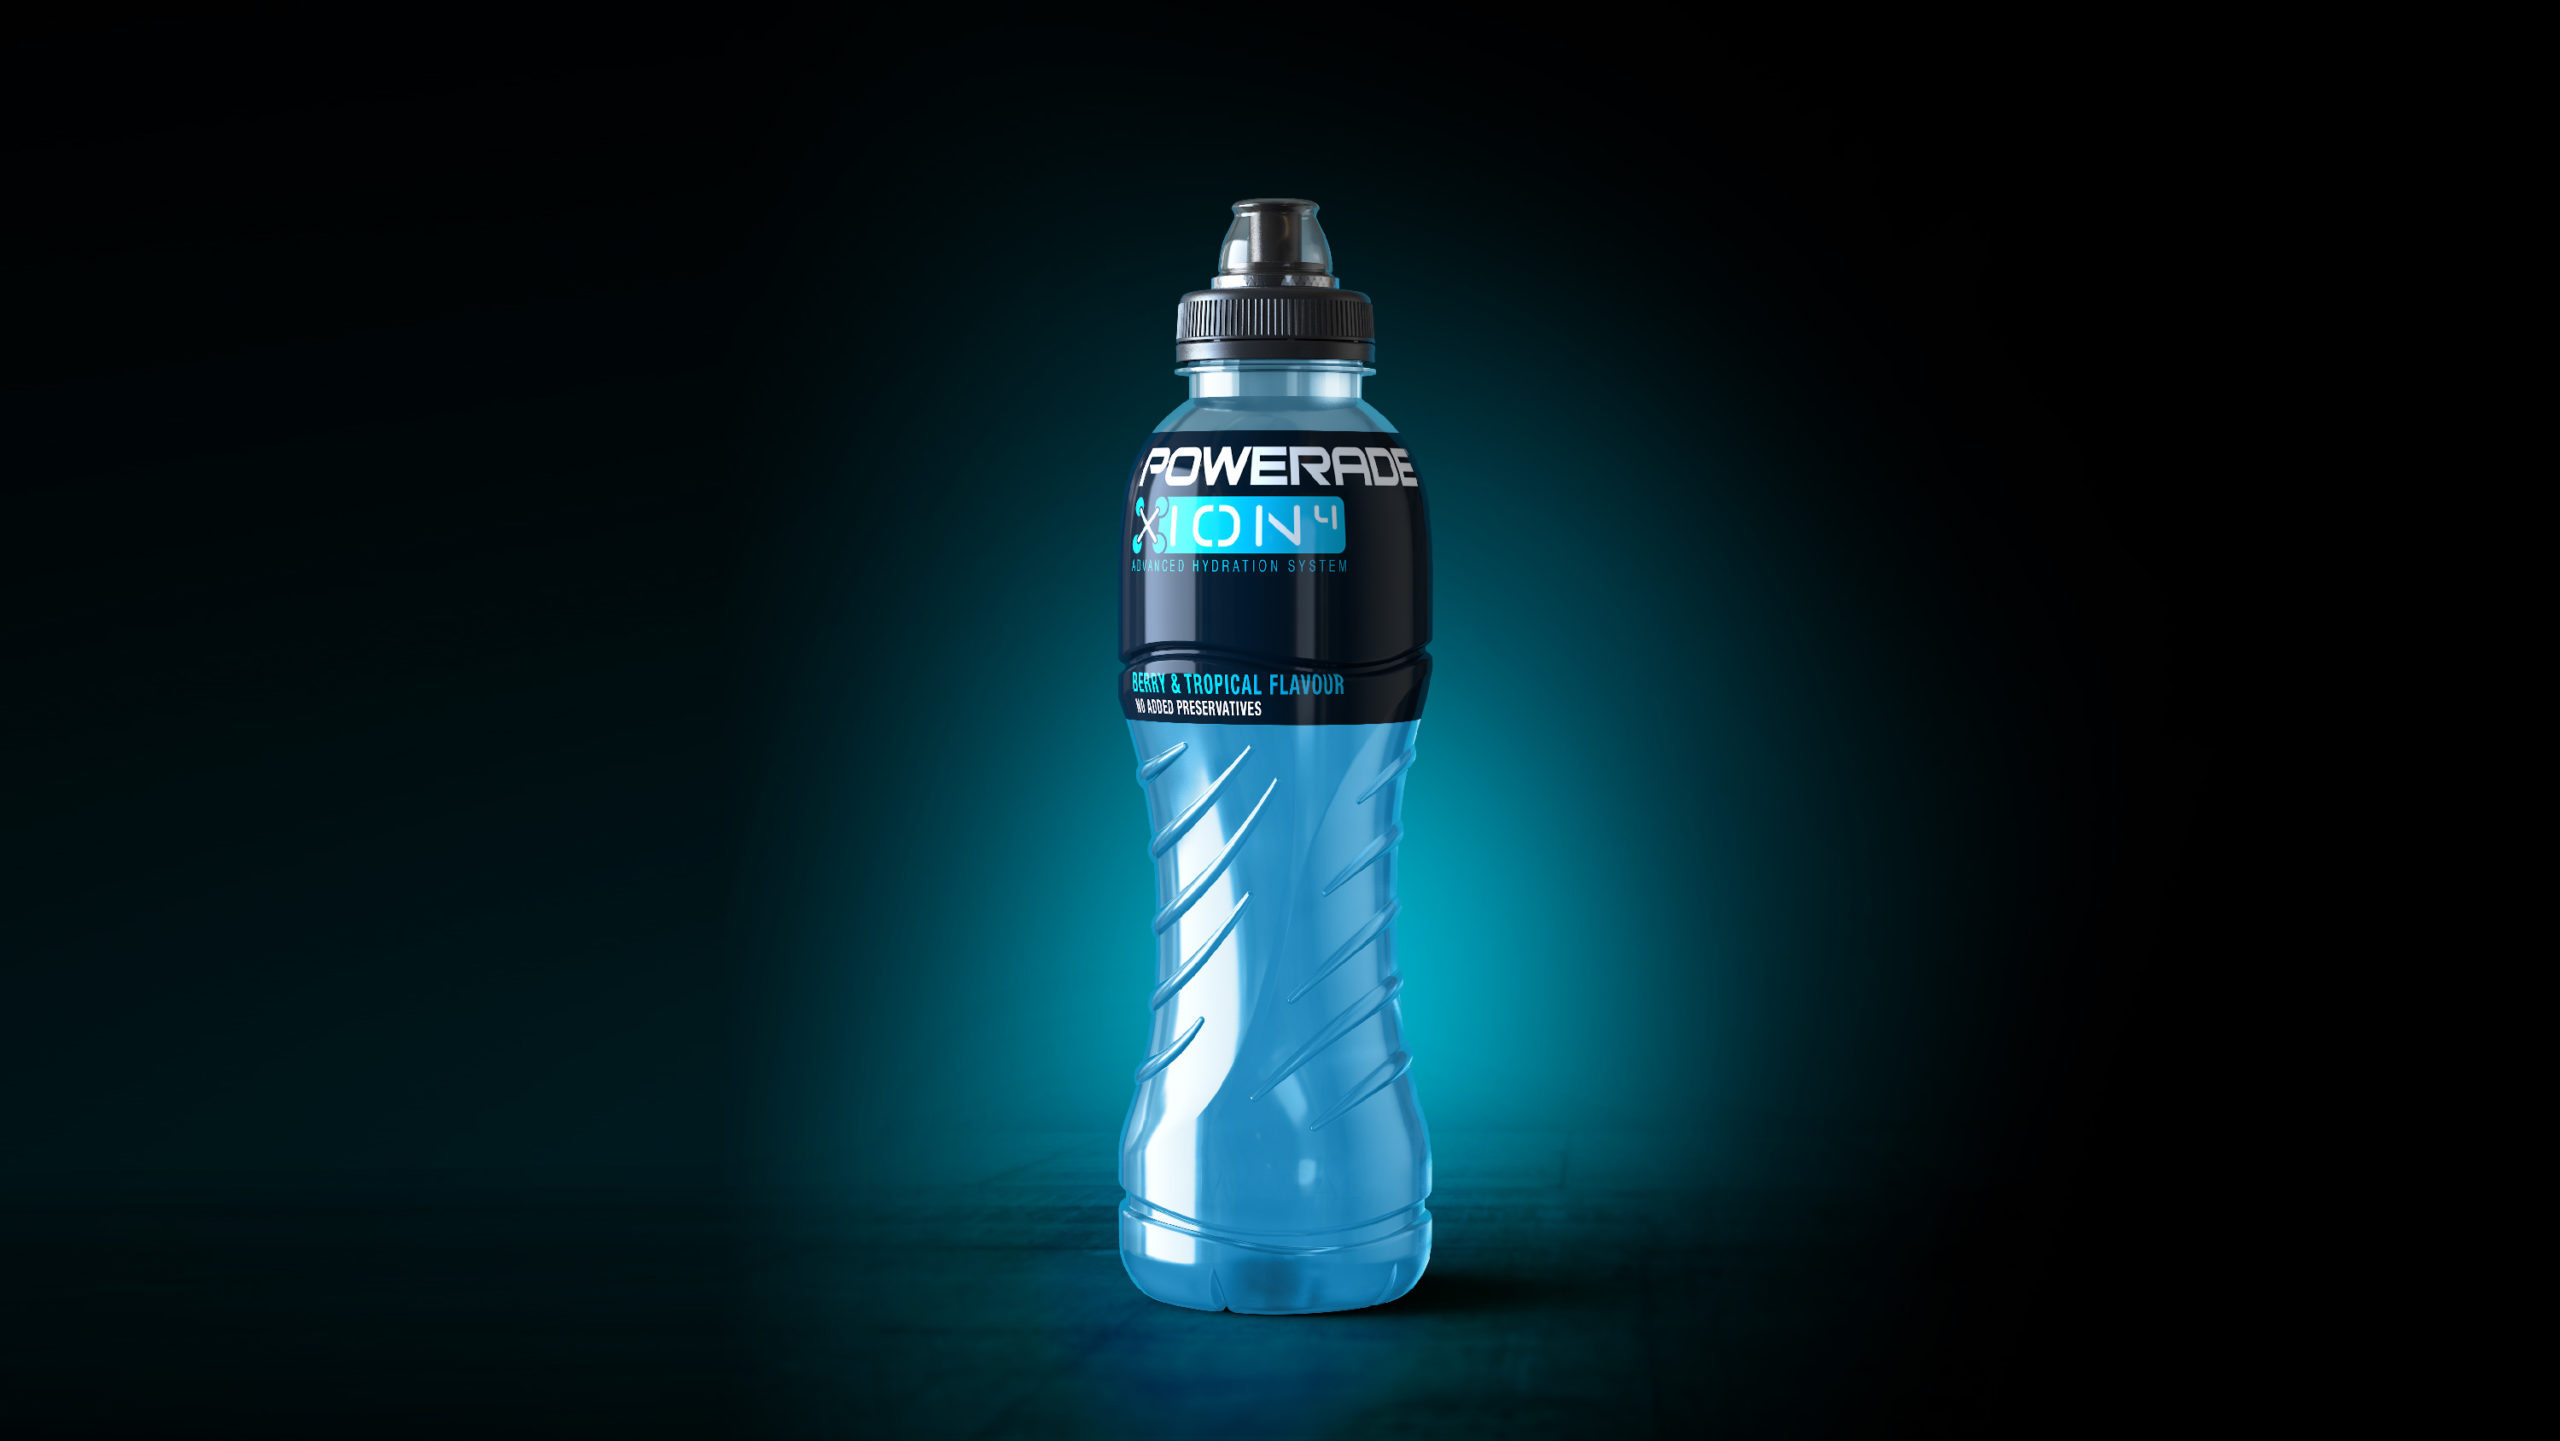 powerade pricing strategy G force customers, including schools, are given preferred pricing on products alfie brody, director-marketing for the athletic channel, wouldn't disclose specifics, but said the pricing varies based on the venue.